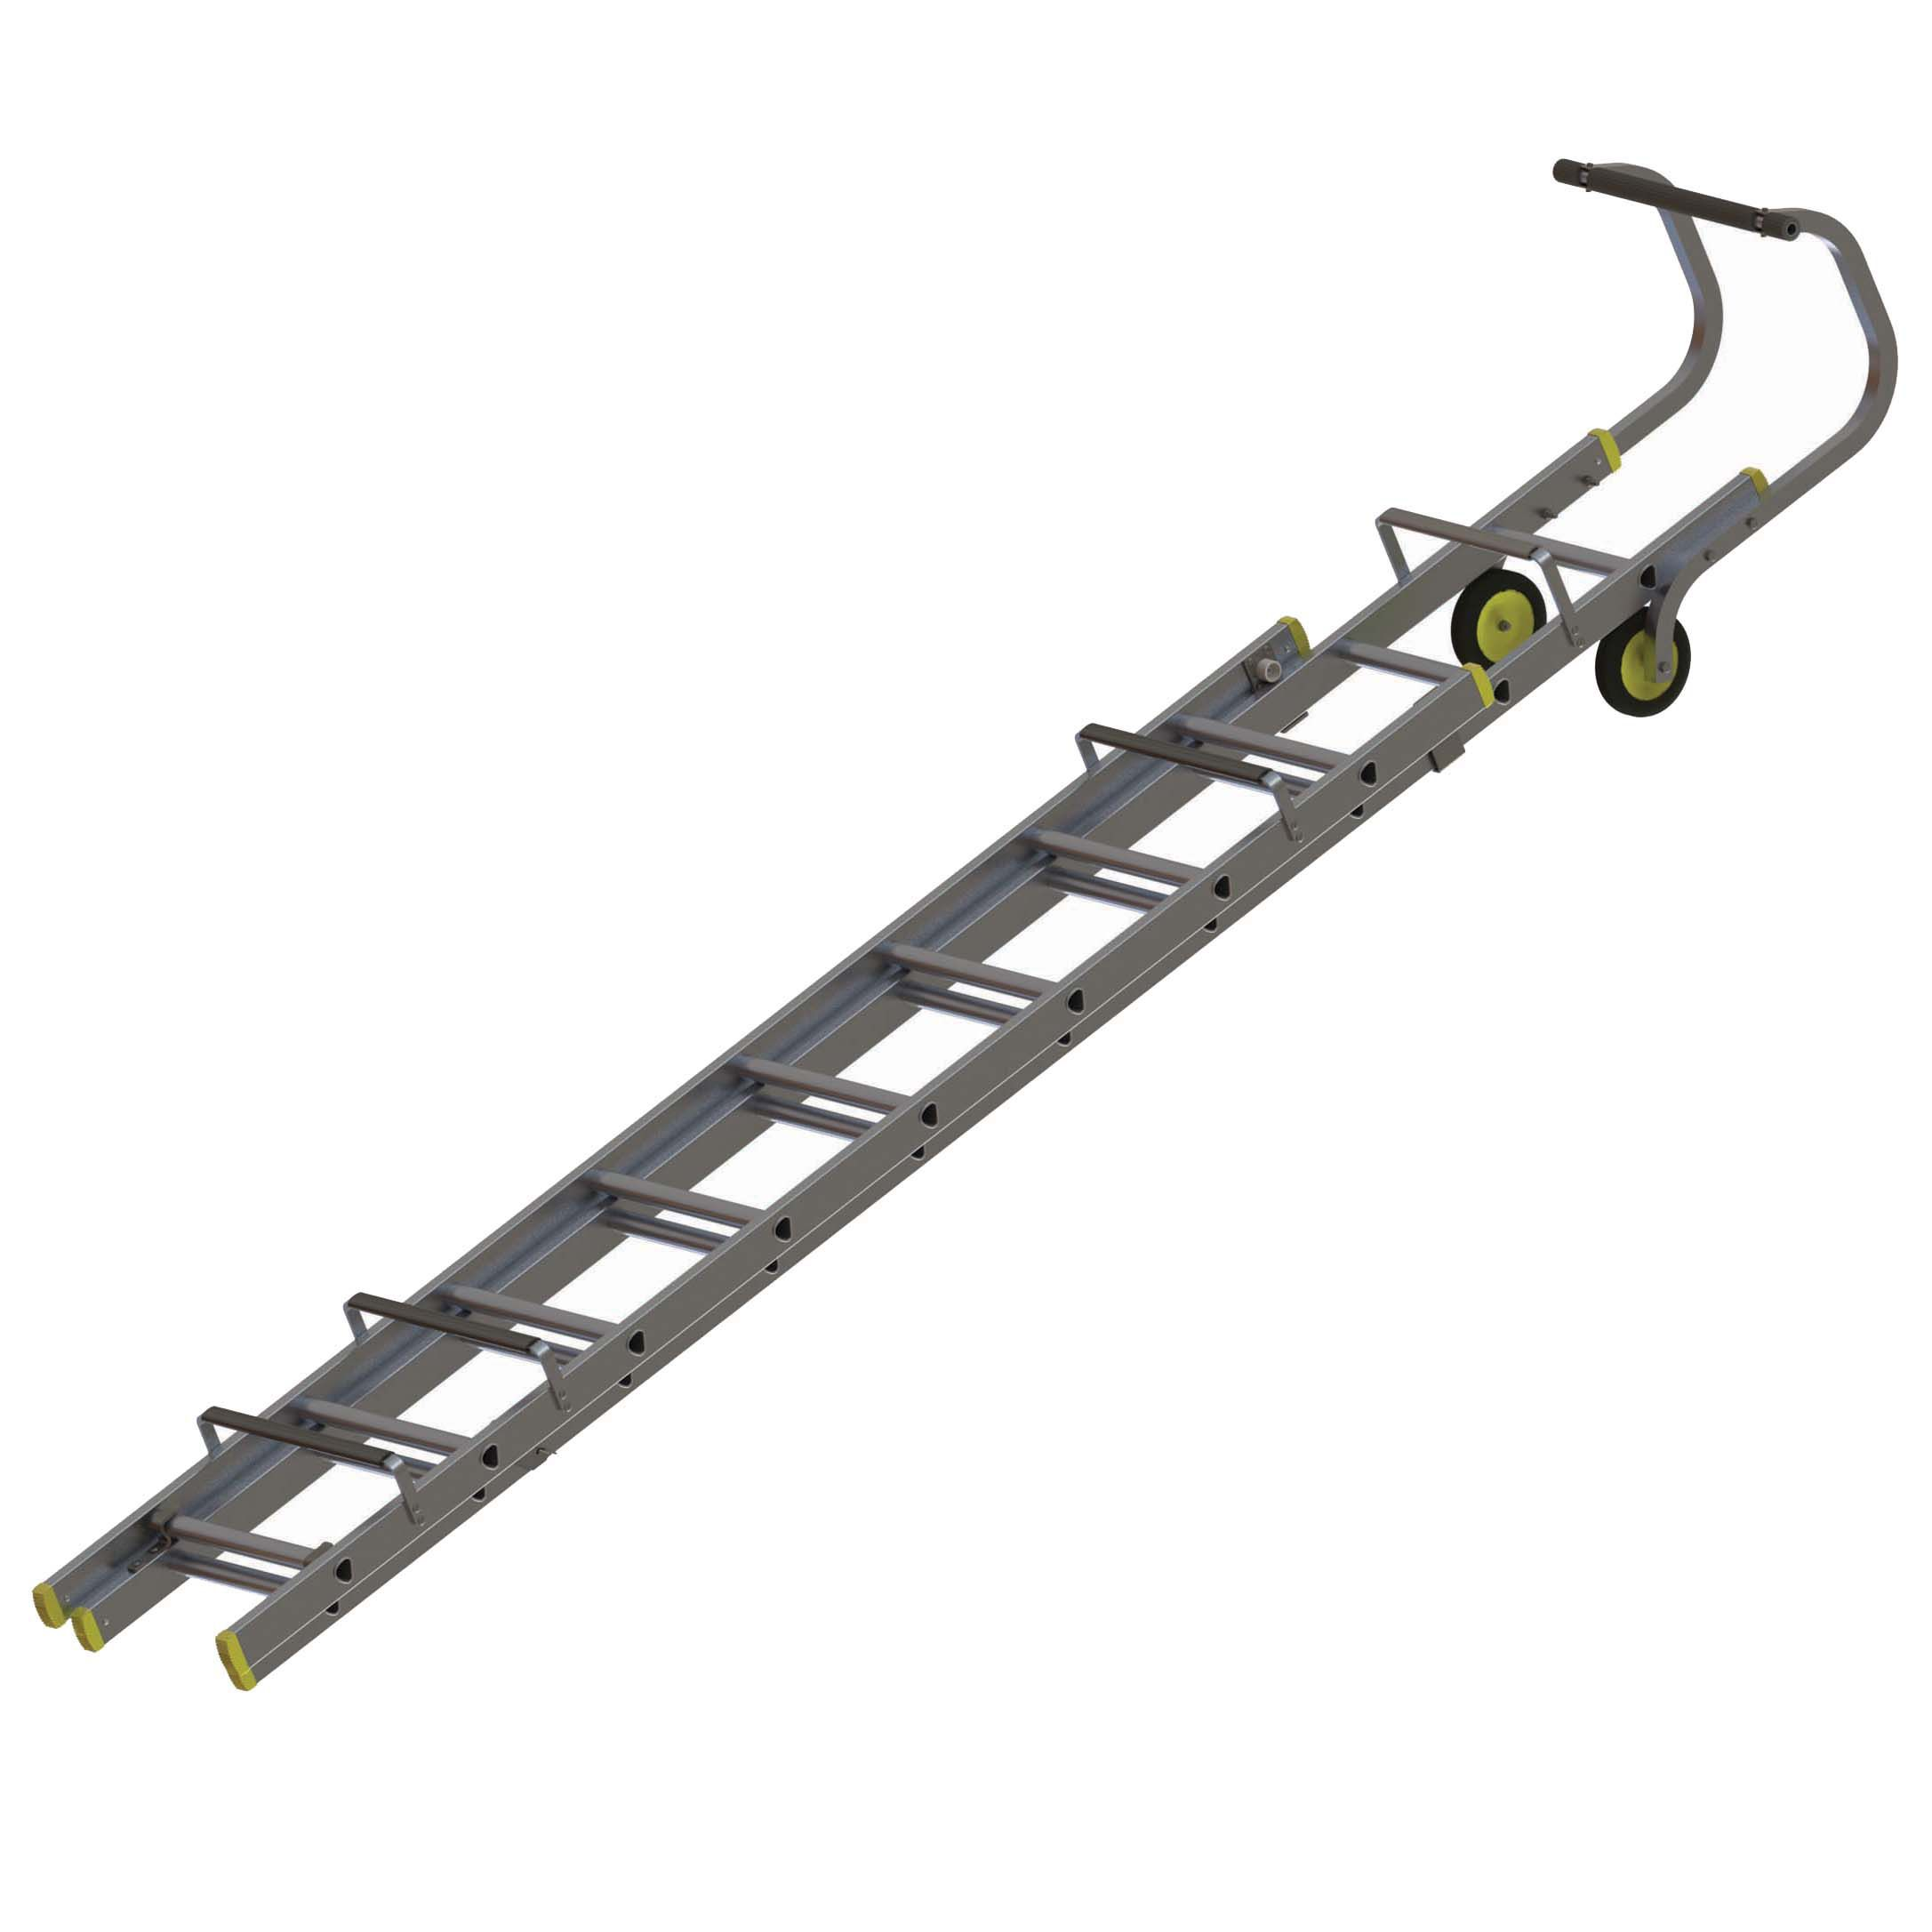 Roof Ladder Amp Ladder Stabilizer Roof Stand Off Roof Zone